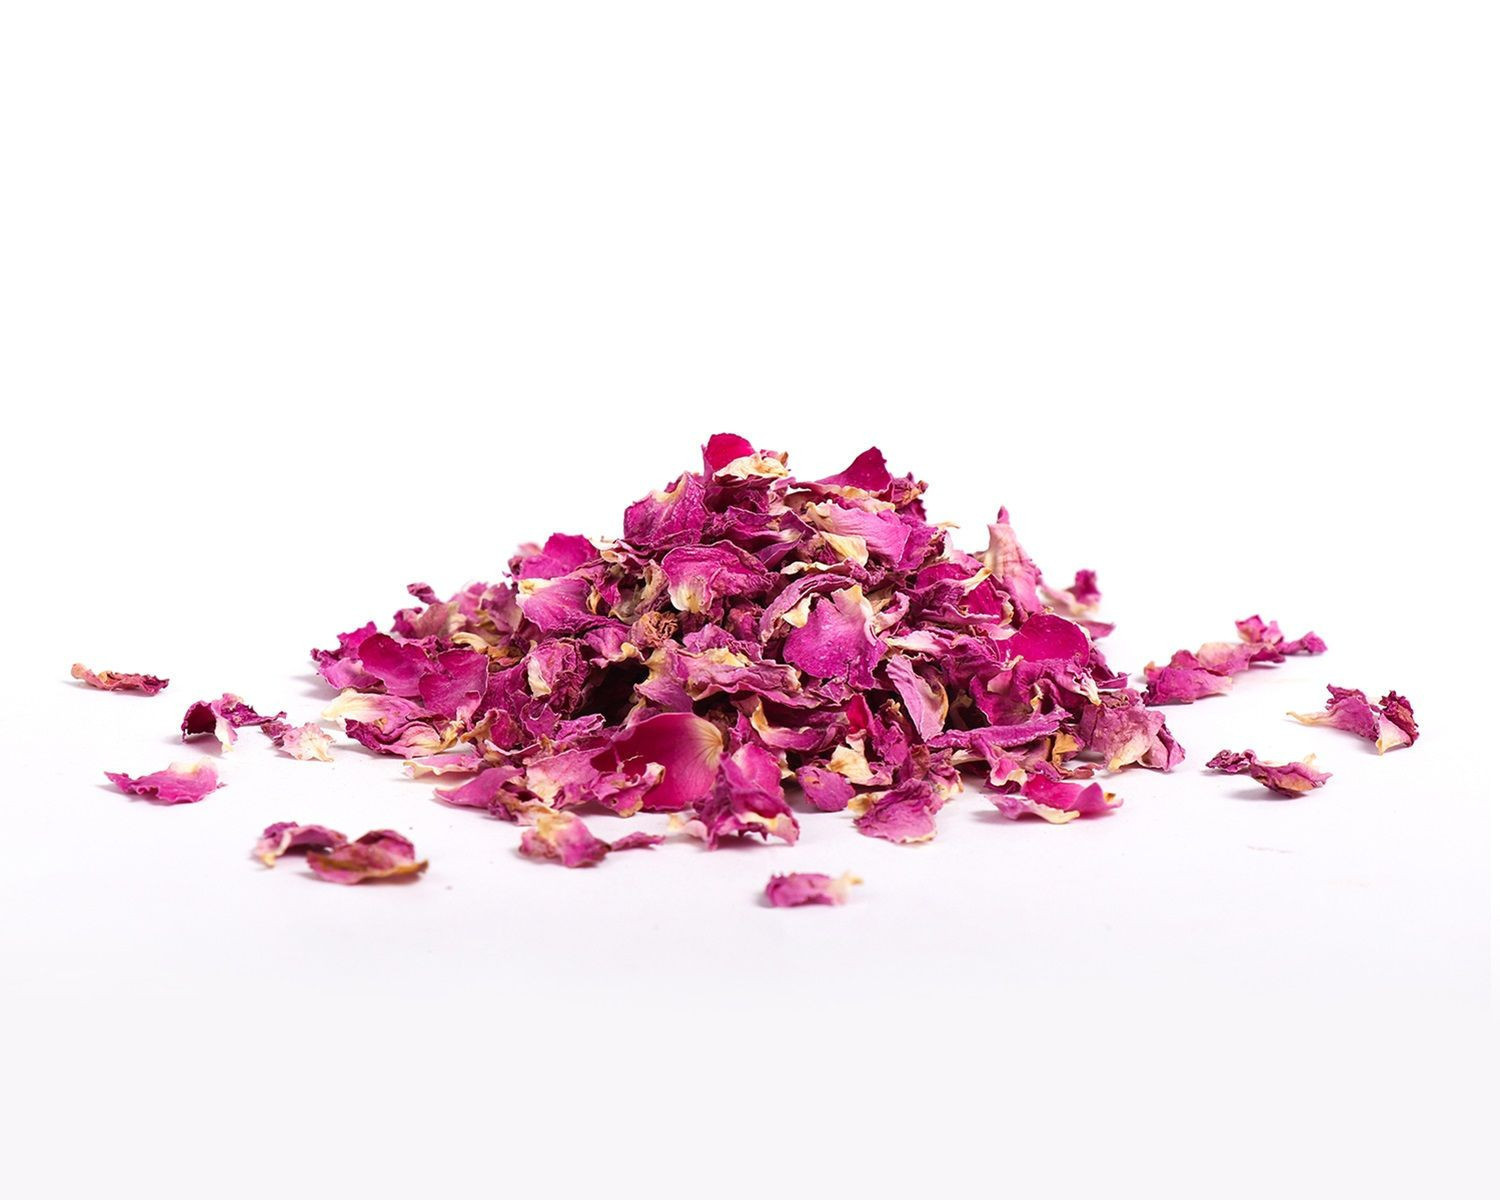 Organic and Conventional Rose Petals